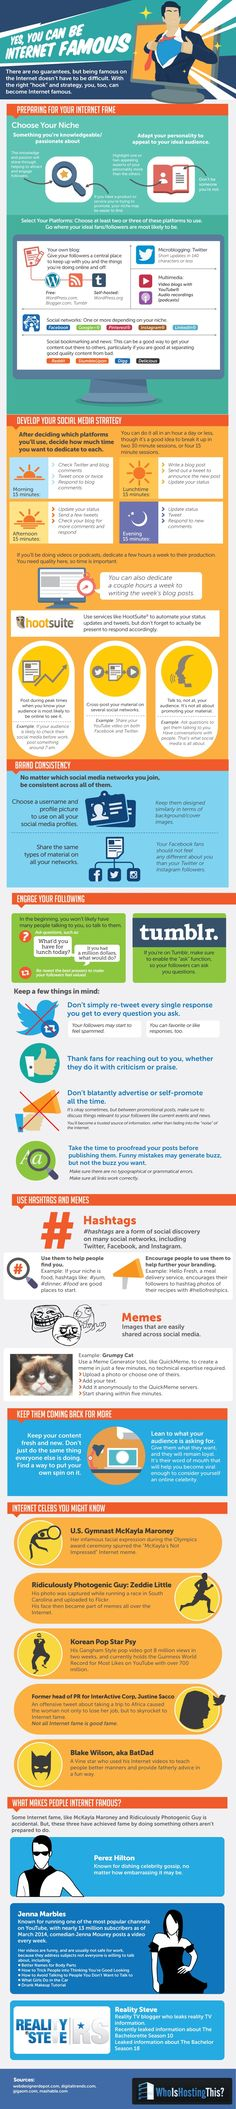 Yes, You Can Be Internet Famous - #Infographic #socialmedia #personalbranding